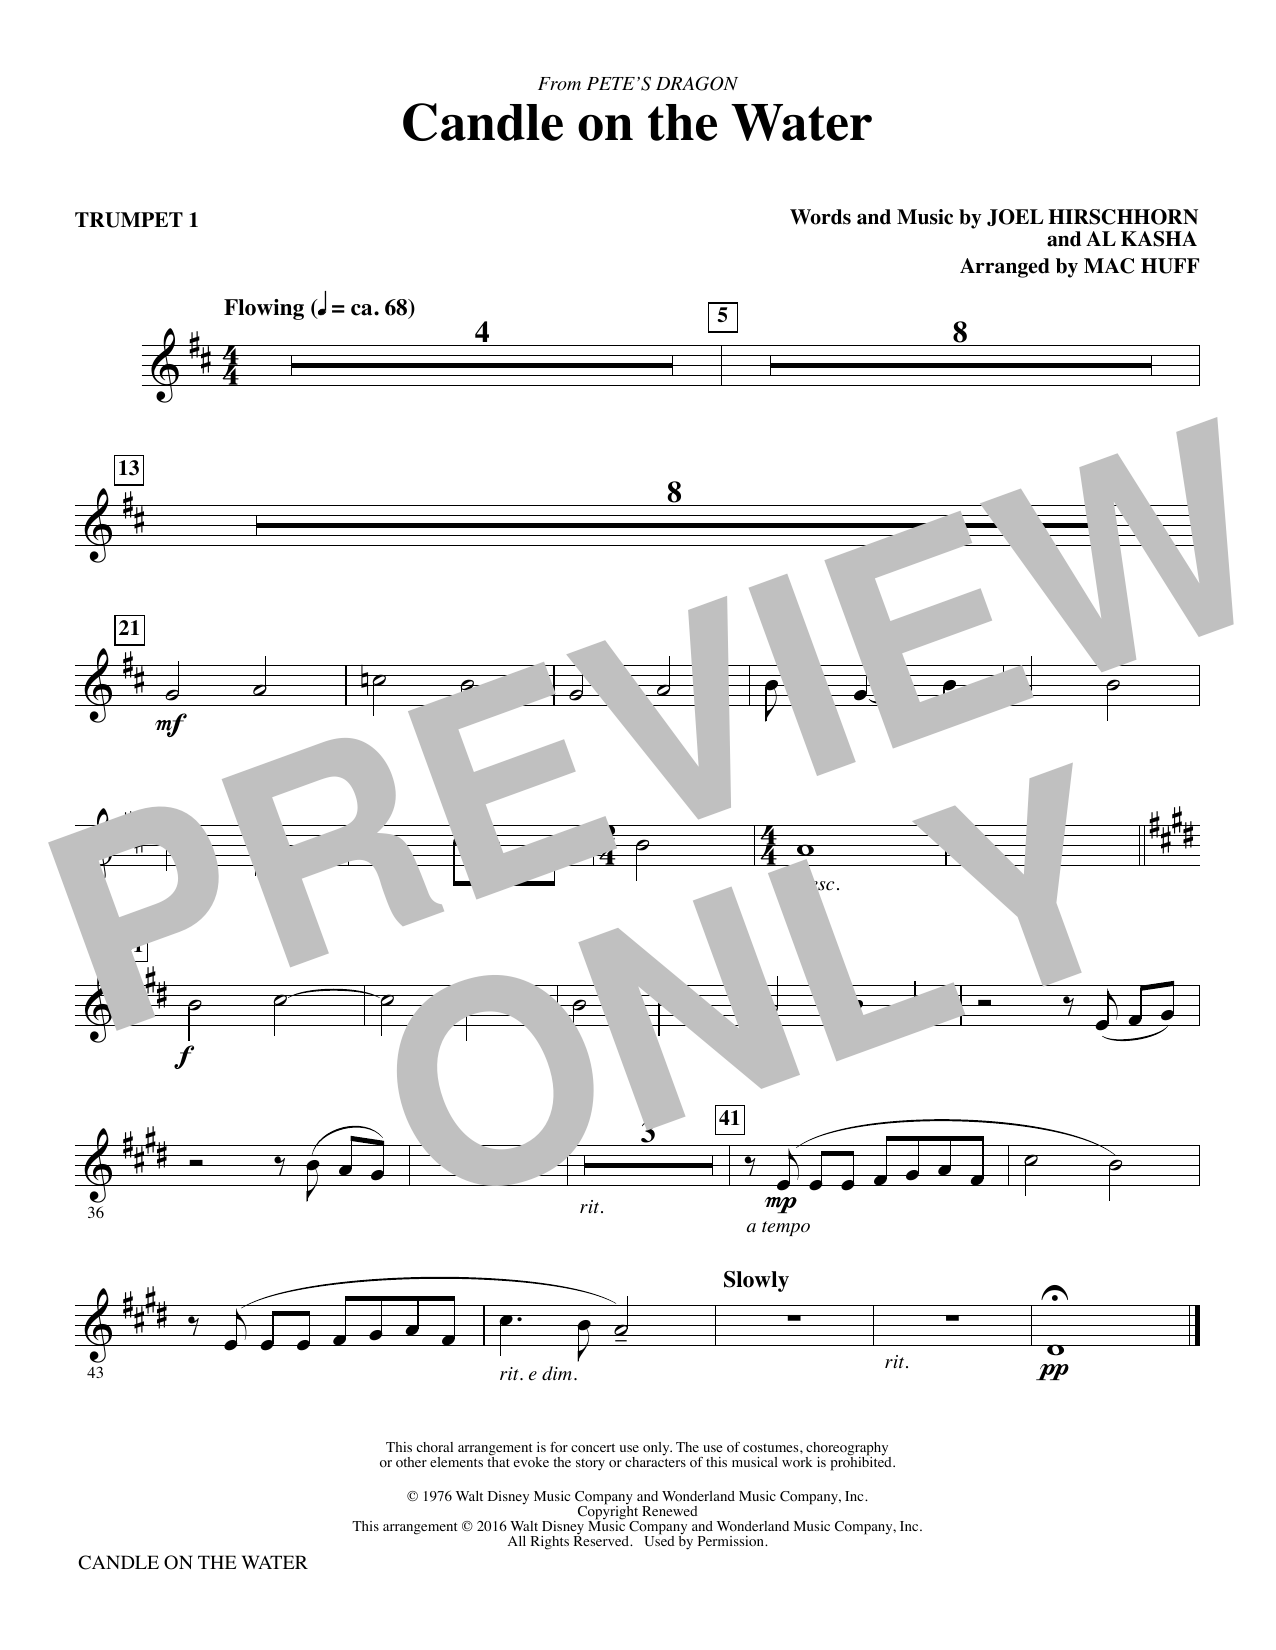 Candle on the Water (complete set of parts) sheet music for orchestra/band by Mac Huff, Al Kasha and Joel Hirschhorn. Score Image Preview.